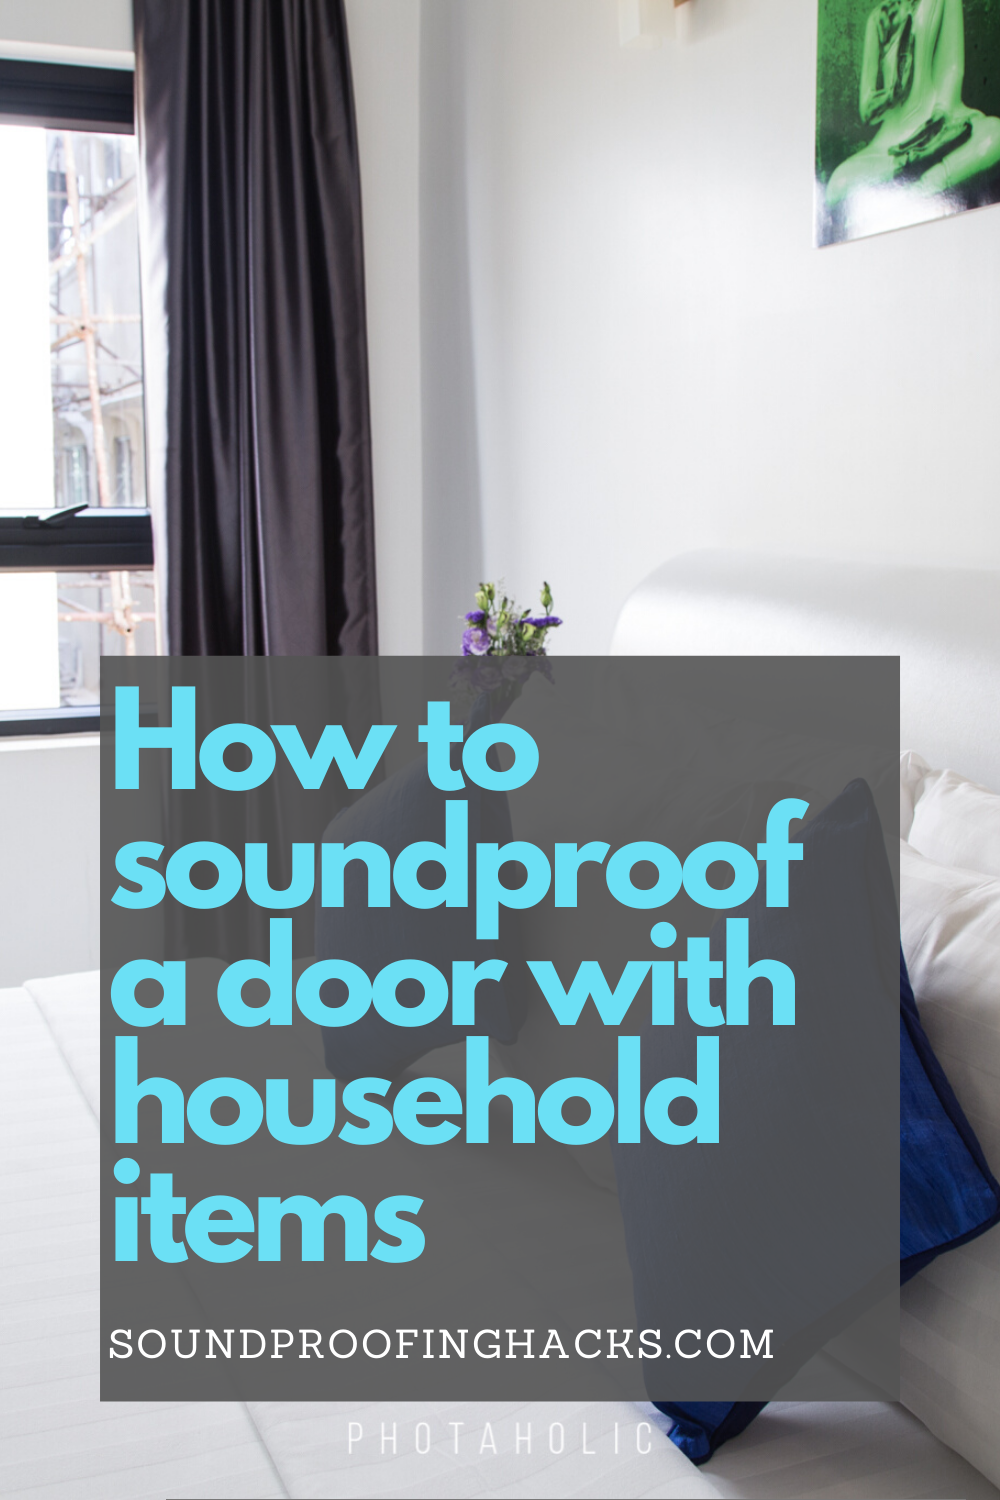 How To Soundproof A Door With Household Items In 2020 Sound Proofing Household Items Soundproofing Diy